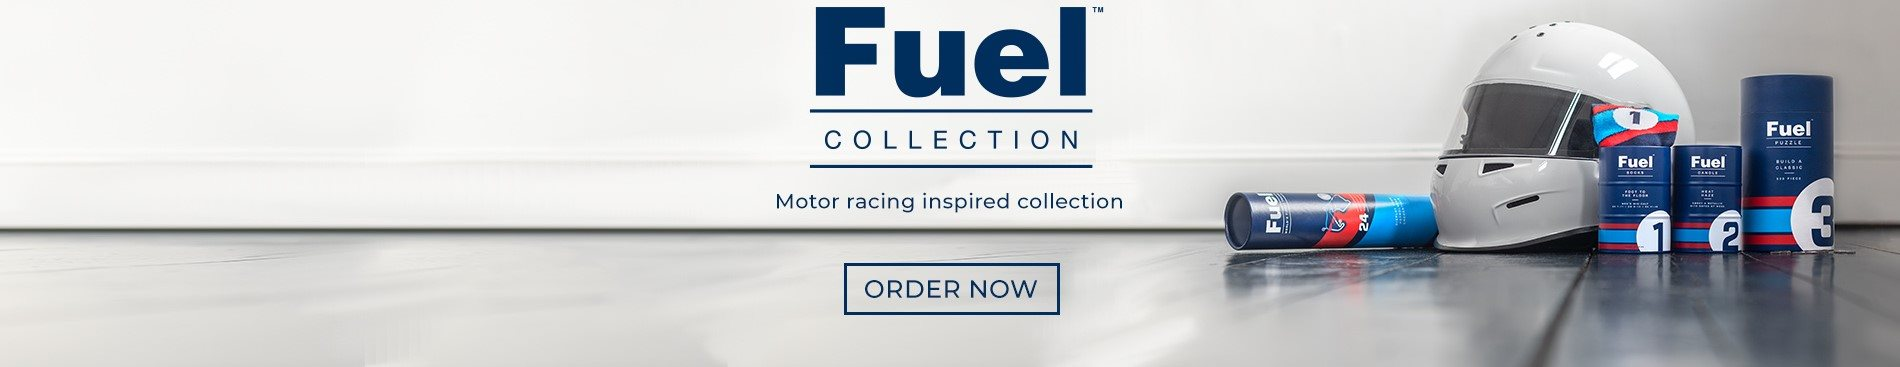 Fuel Collection